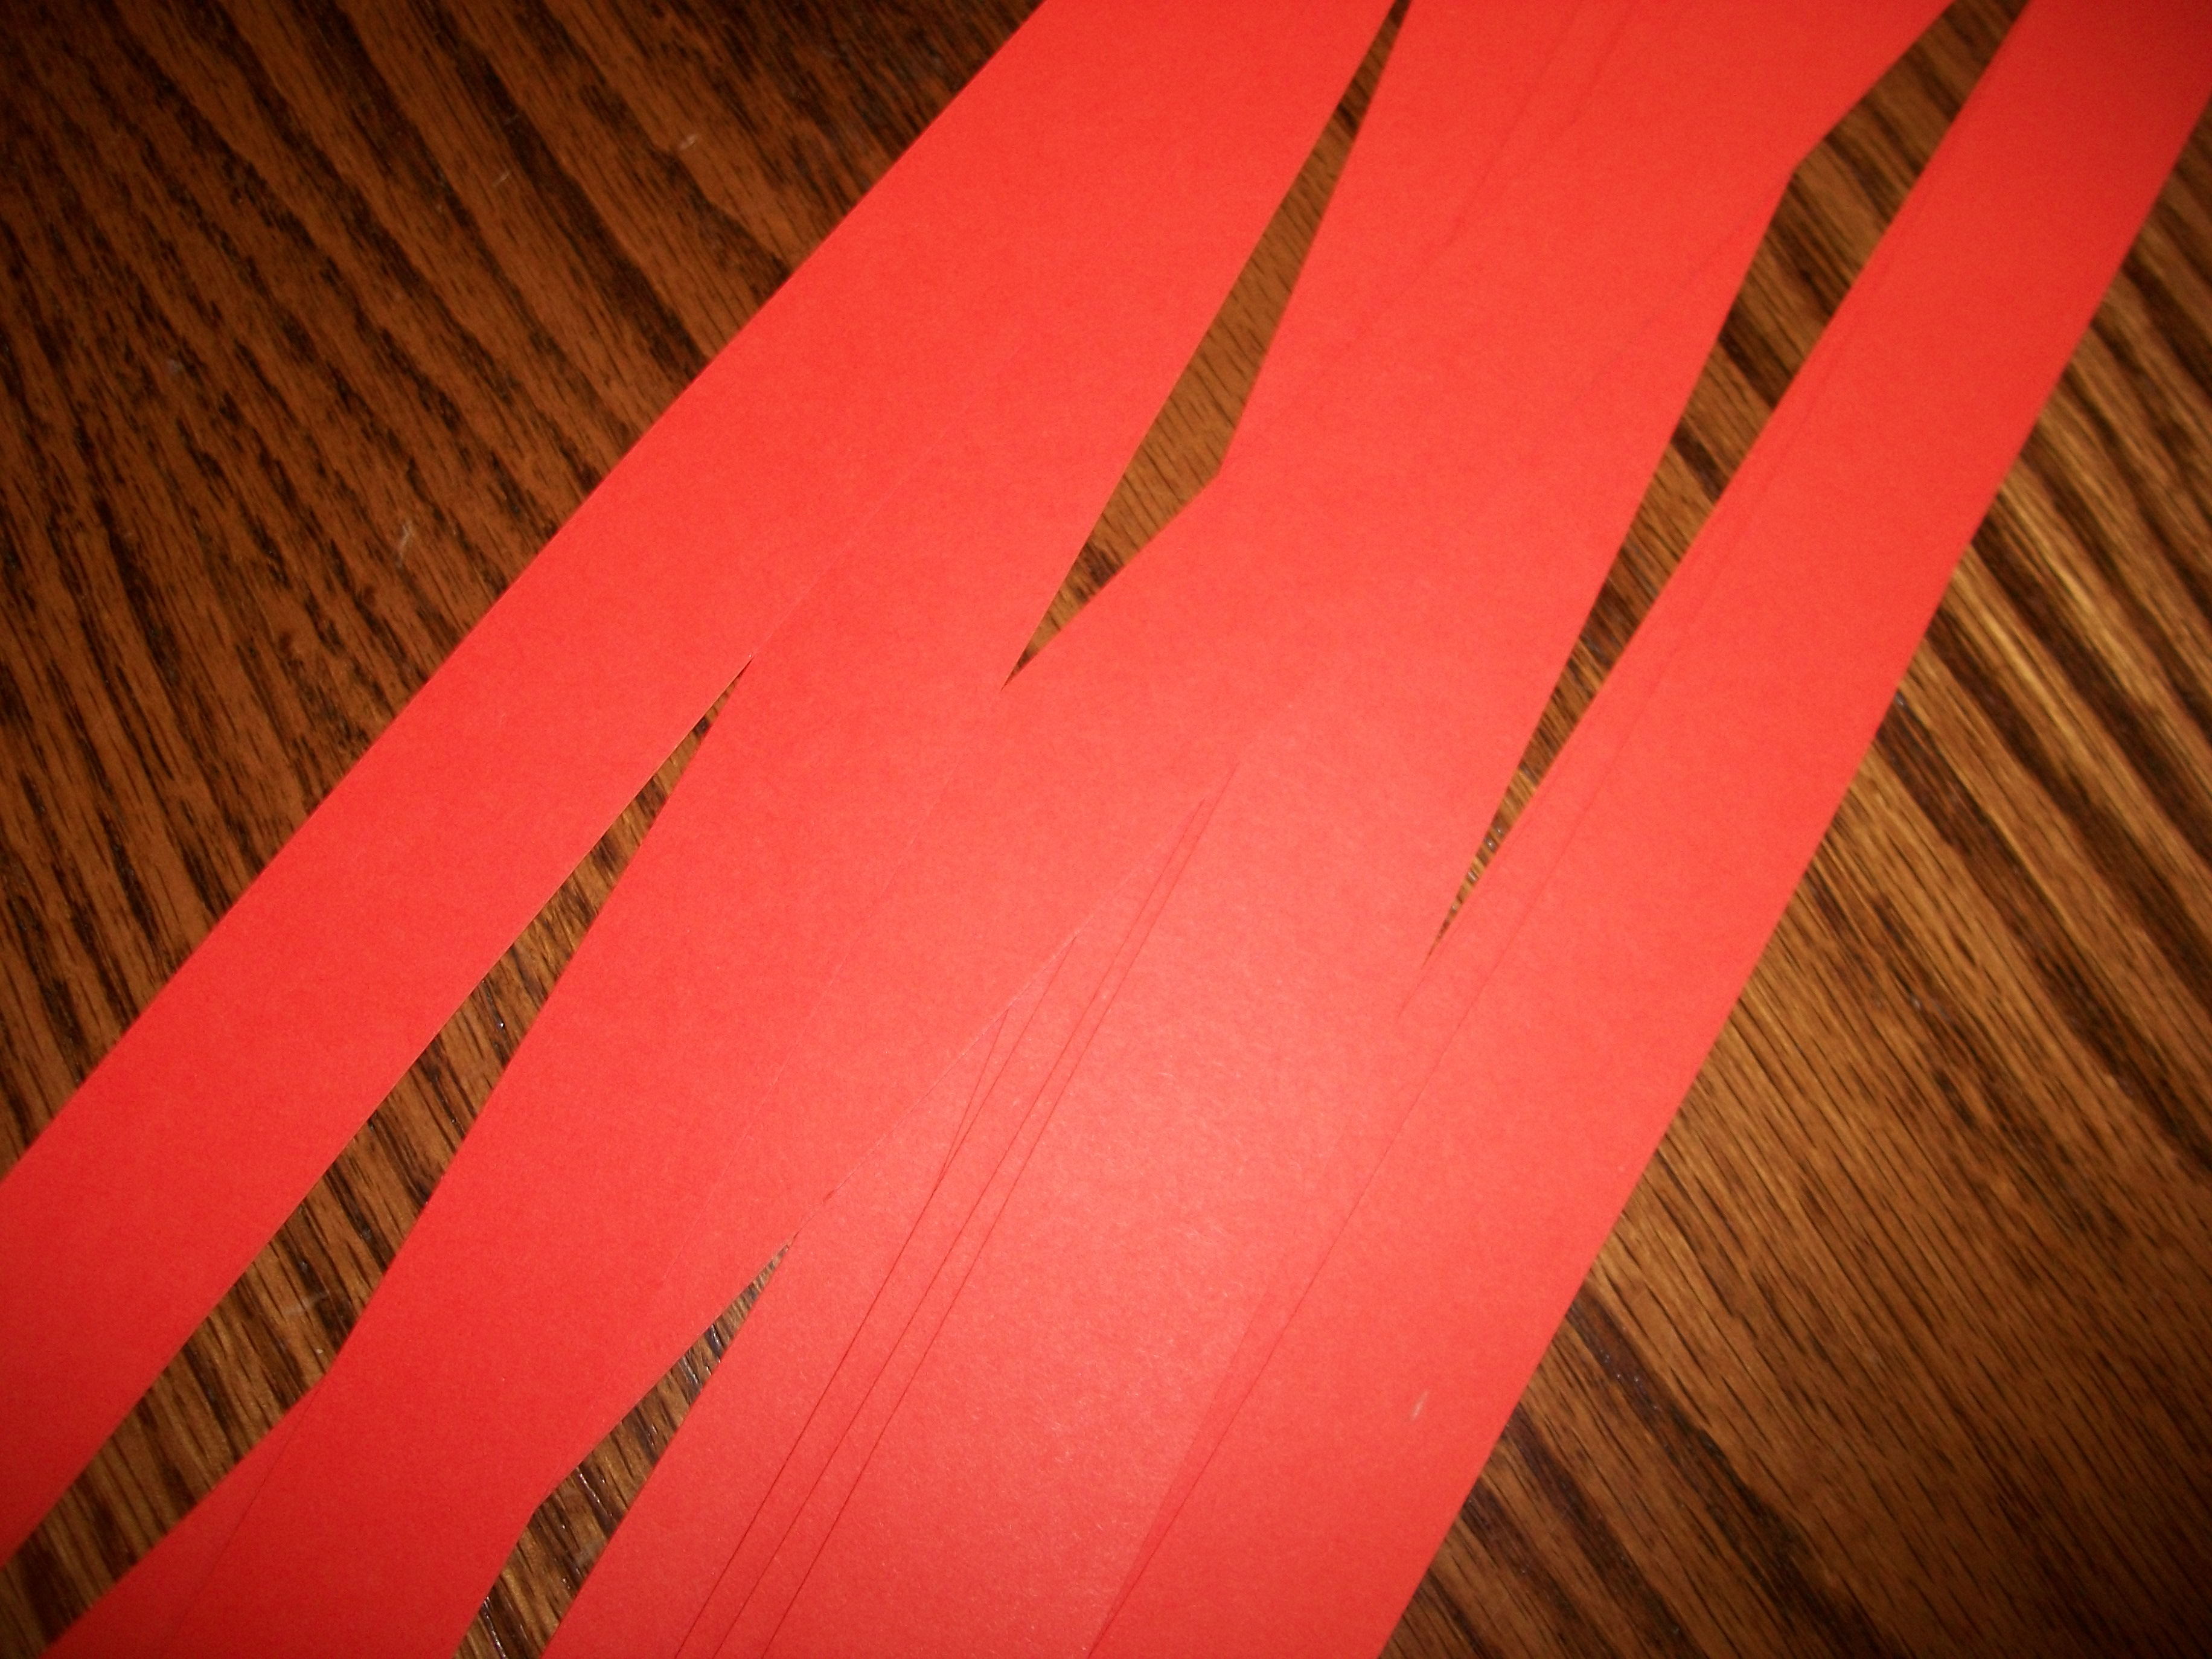 Cut Your Paper Lengthwise Into Strips The Width Is Up To